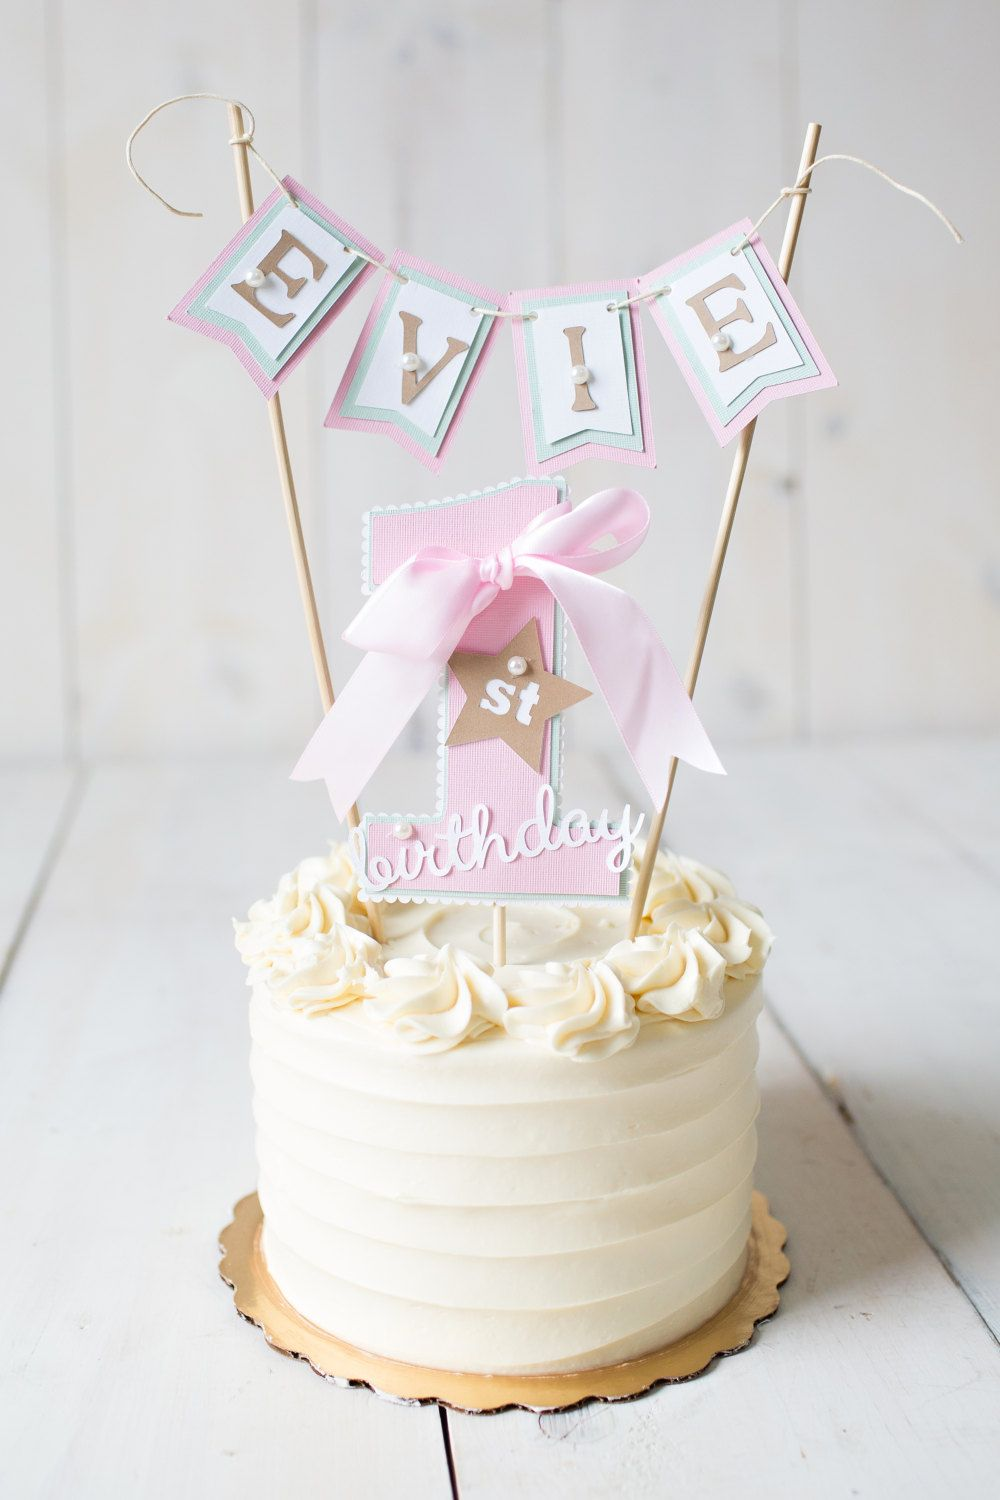 Cake Decorating Ideas For Baby S First Birthday : Girl / First Birthday cake topper. 1st birthday party ...